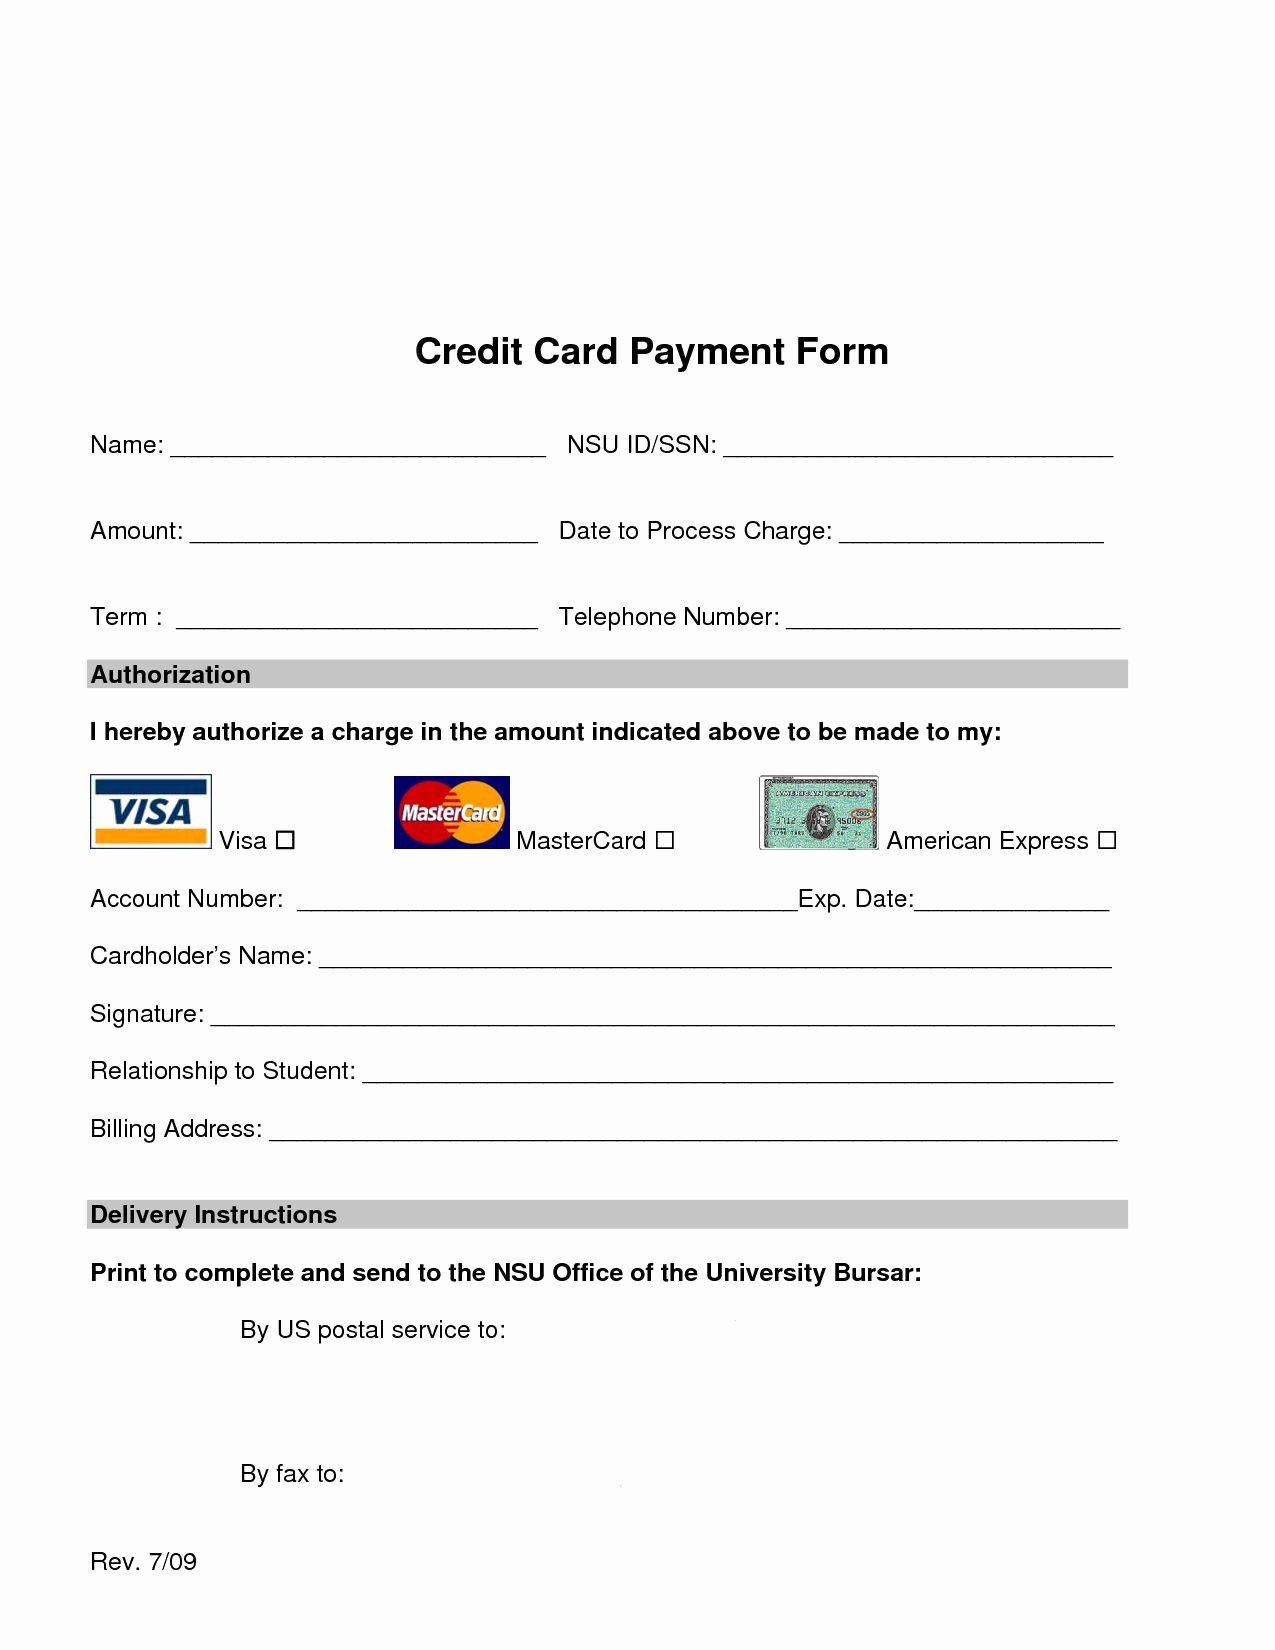 Credit Card Payment form Template Lovely Credit Cards with Credit Score Requirements